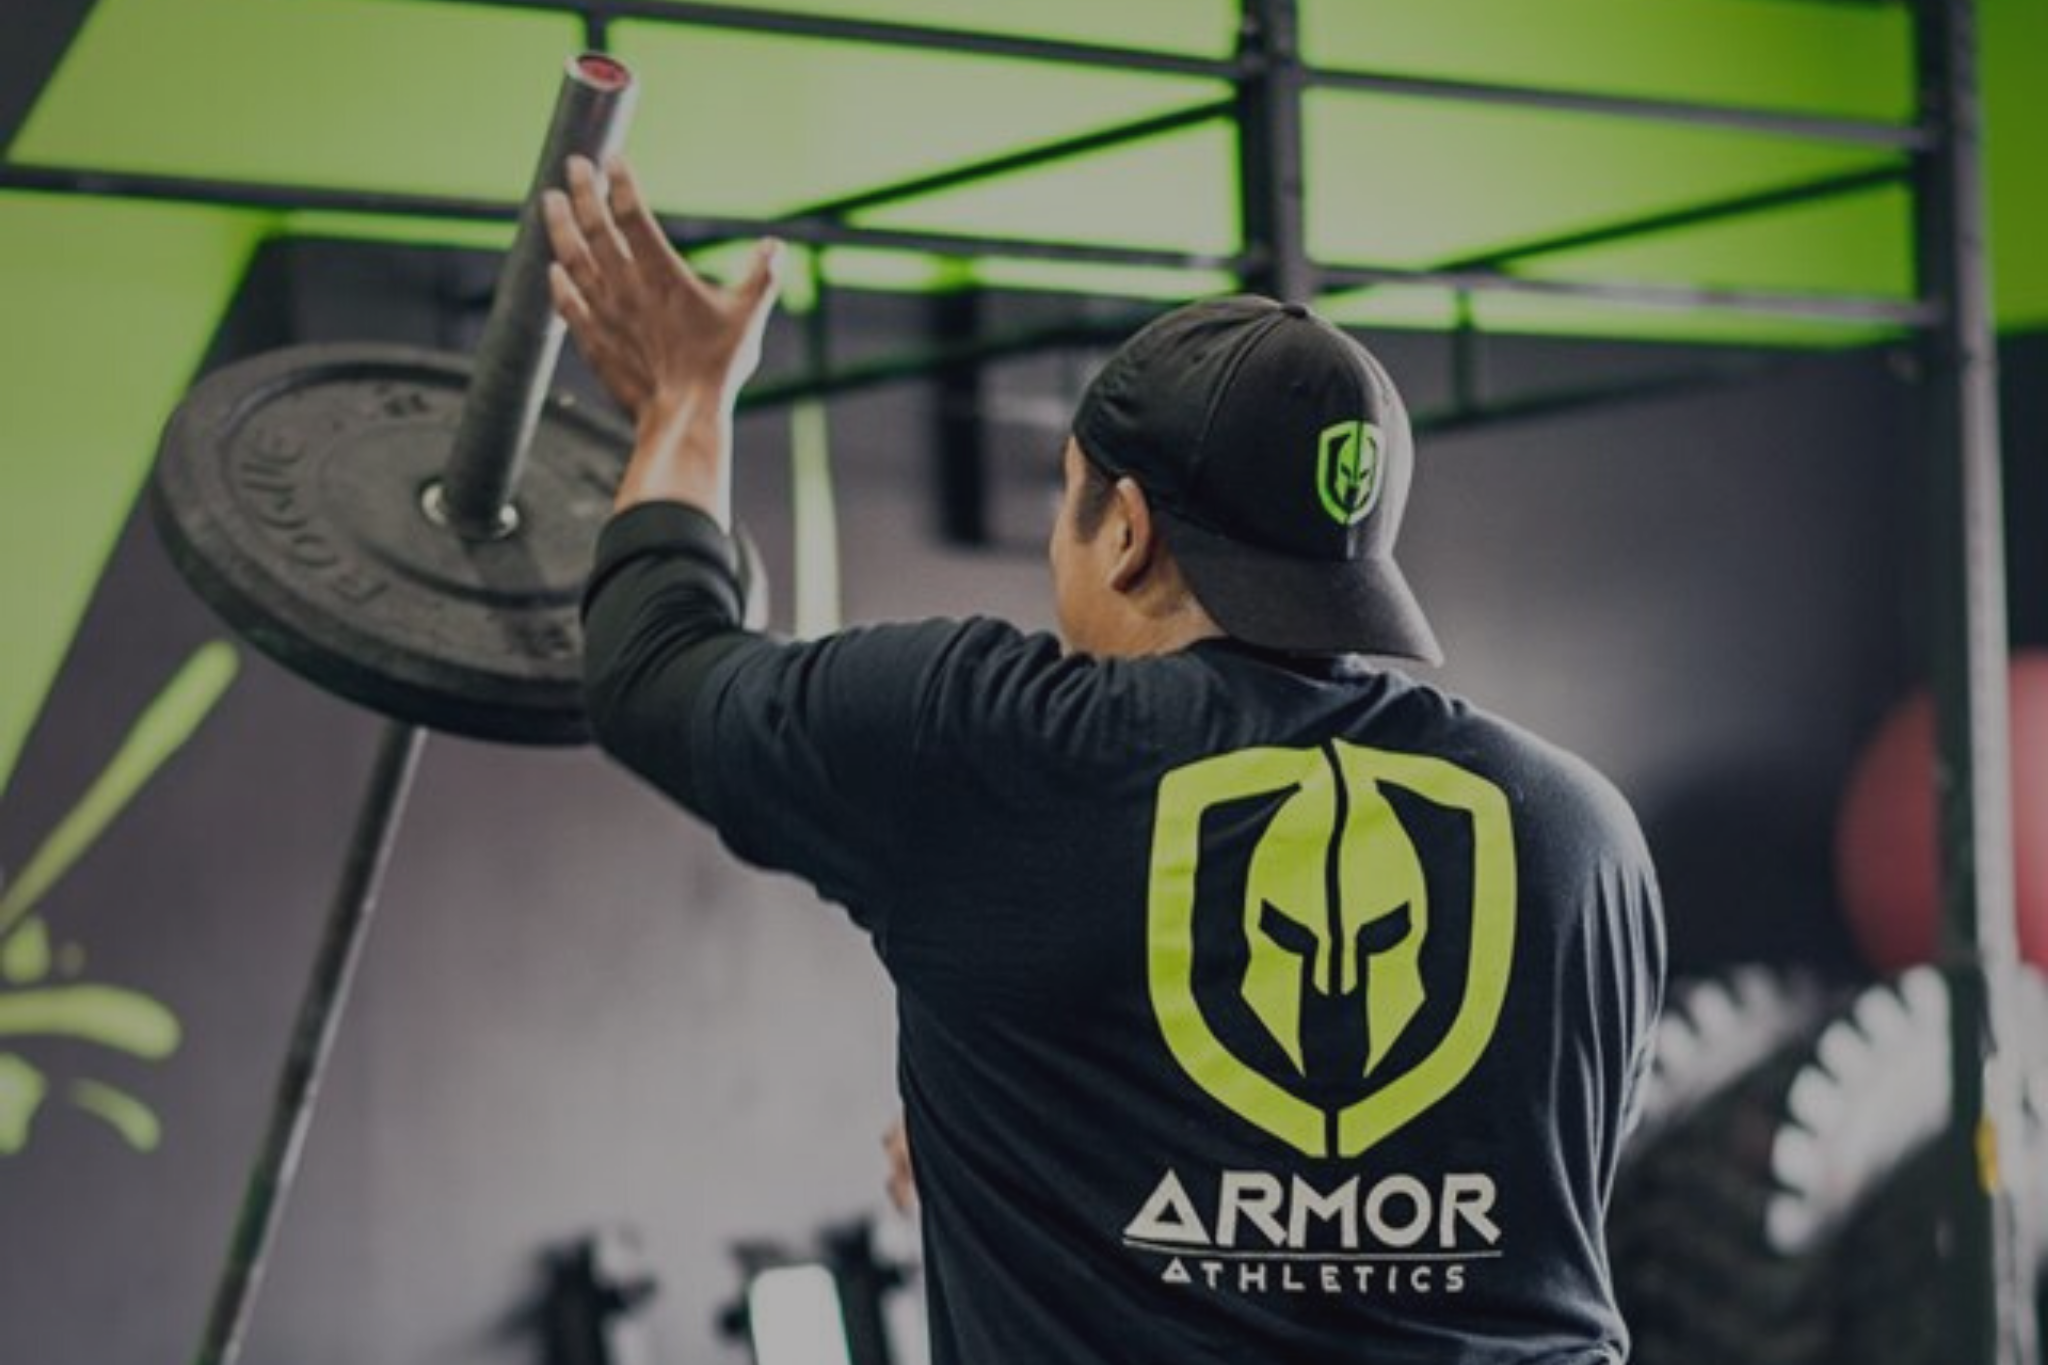 armor, crossfit, class, training, workout, fitness, health, coaching, gym, tacoma